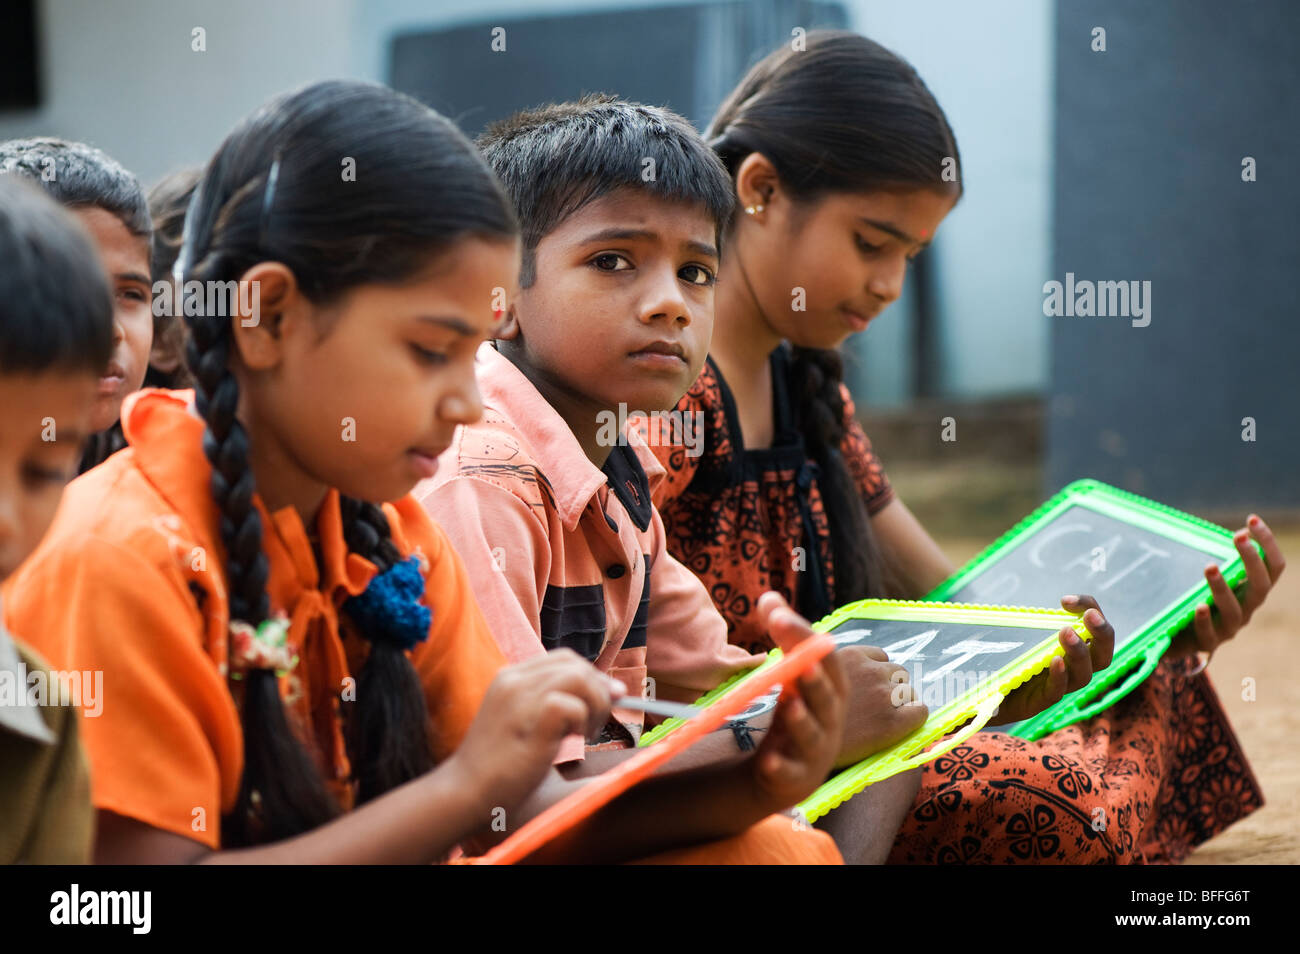 Indian school children sitting outside their school writing on chalkboards. Andhra Pradesh, India. Selective focus. - Stock Image